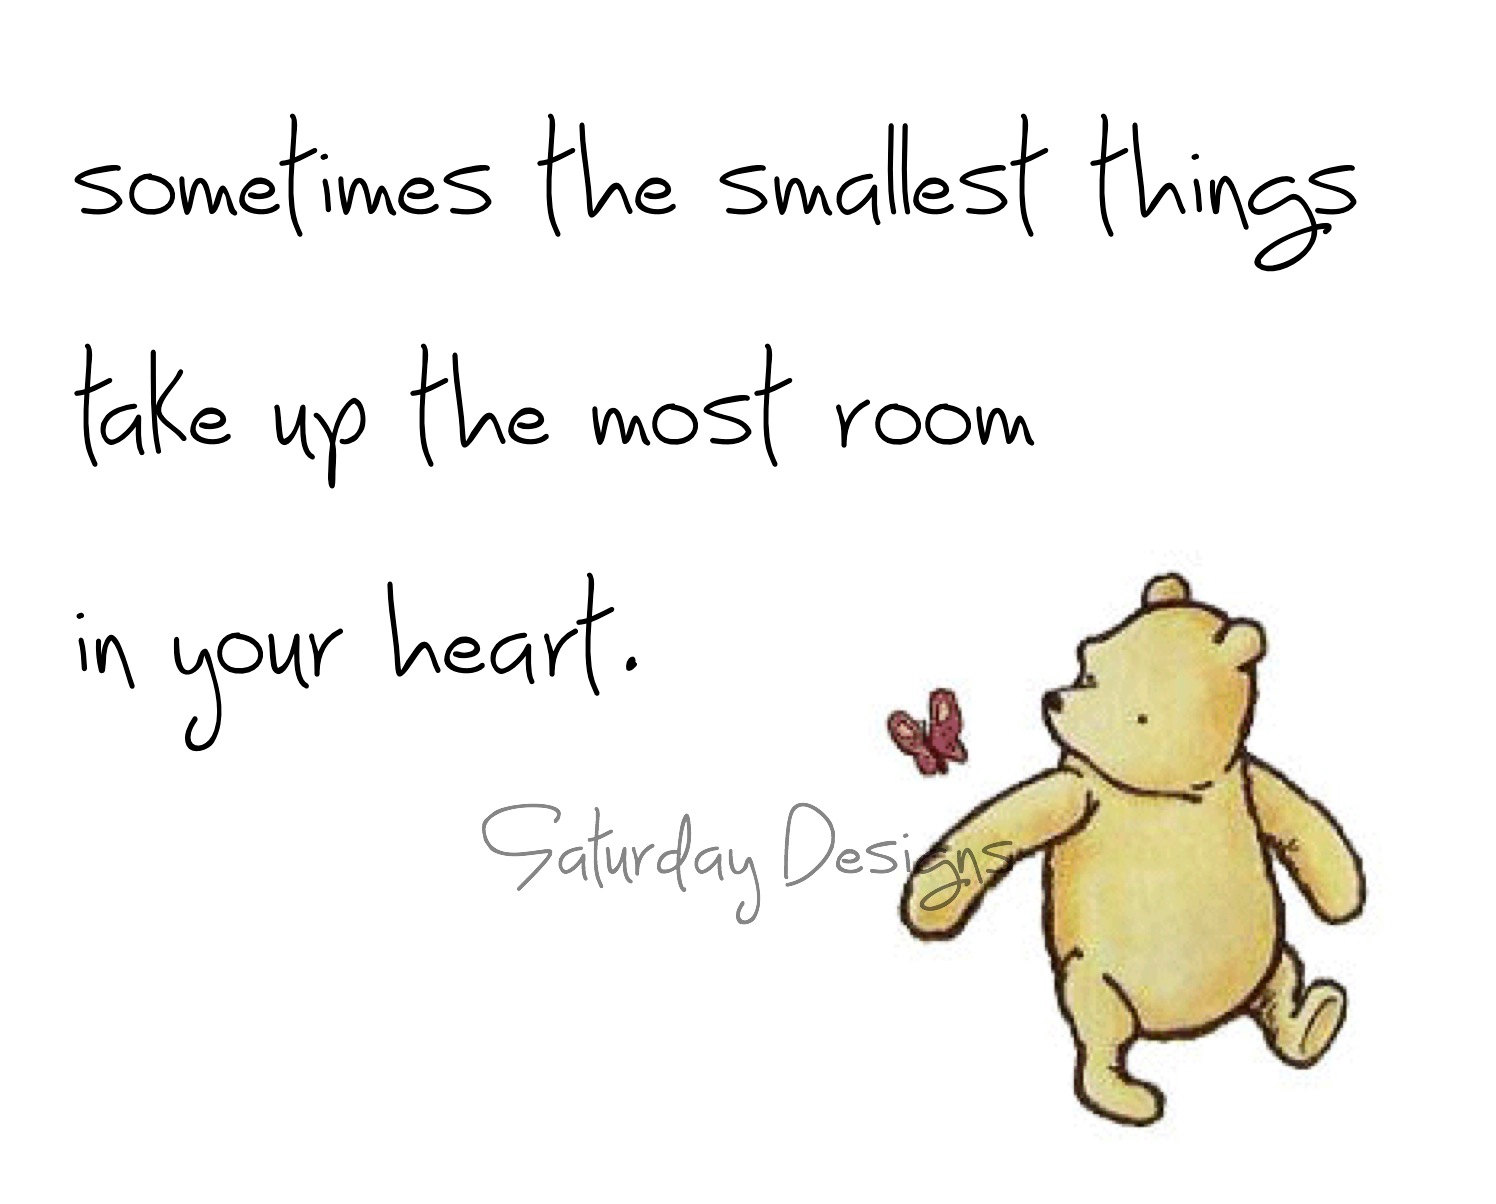 Winnie The Pooh And Piglet Quotes About Friendship Friendship Quote From Winnie The Pooh Winnie The Pooh Quotes